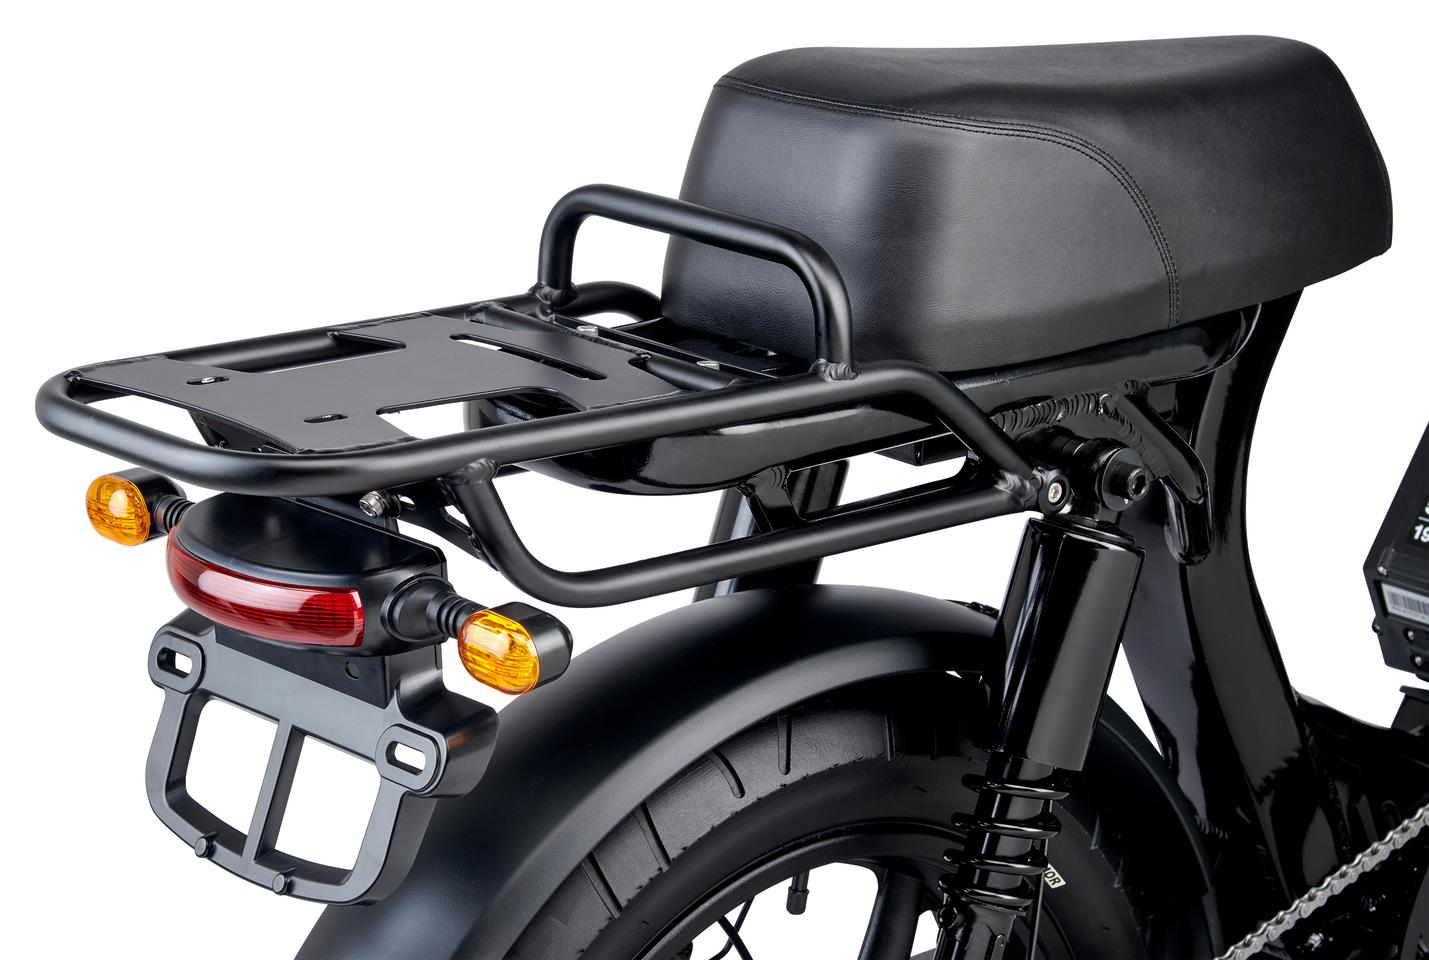 Chunky rear rack, plus motorcycle-style brake lights, indicators and a license plate holder